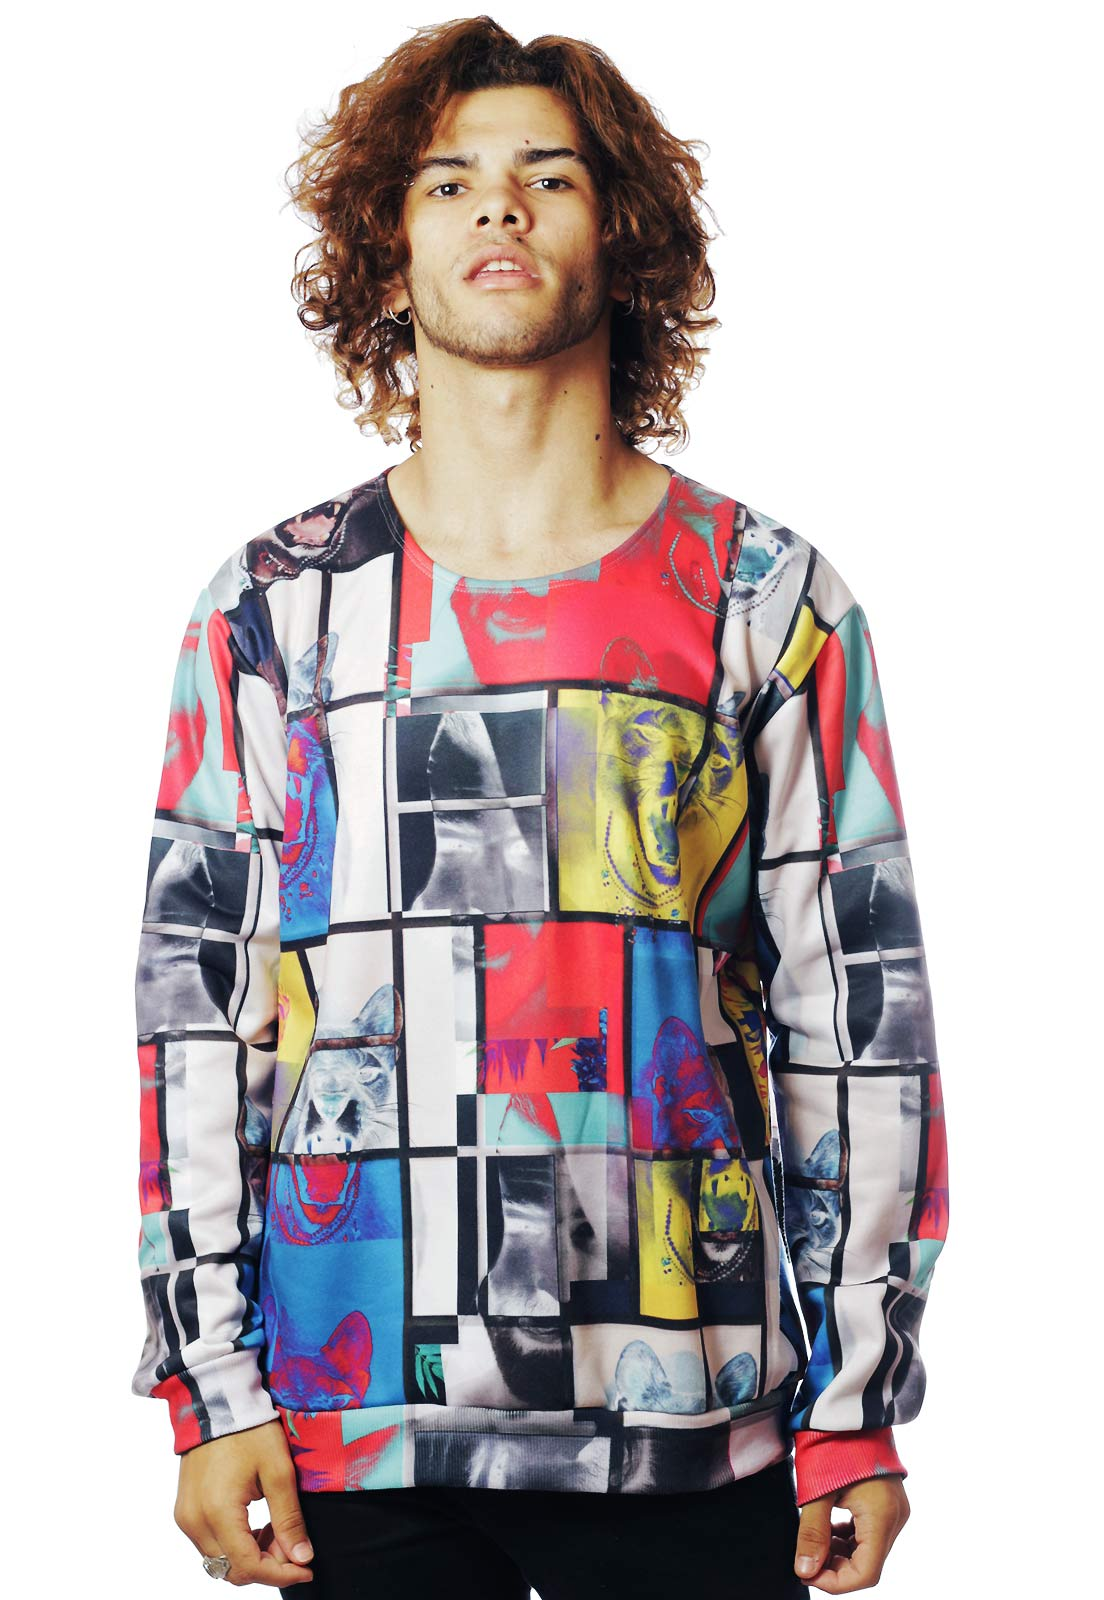 BLUSA MOLETOM ESTAMPADO FULL PRINT UNISSEX JE SUIS L'ART TUMBLR